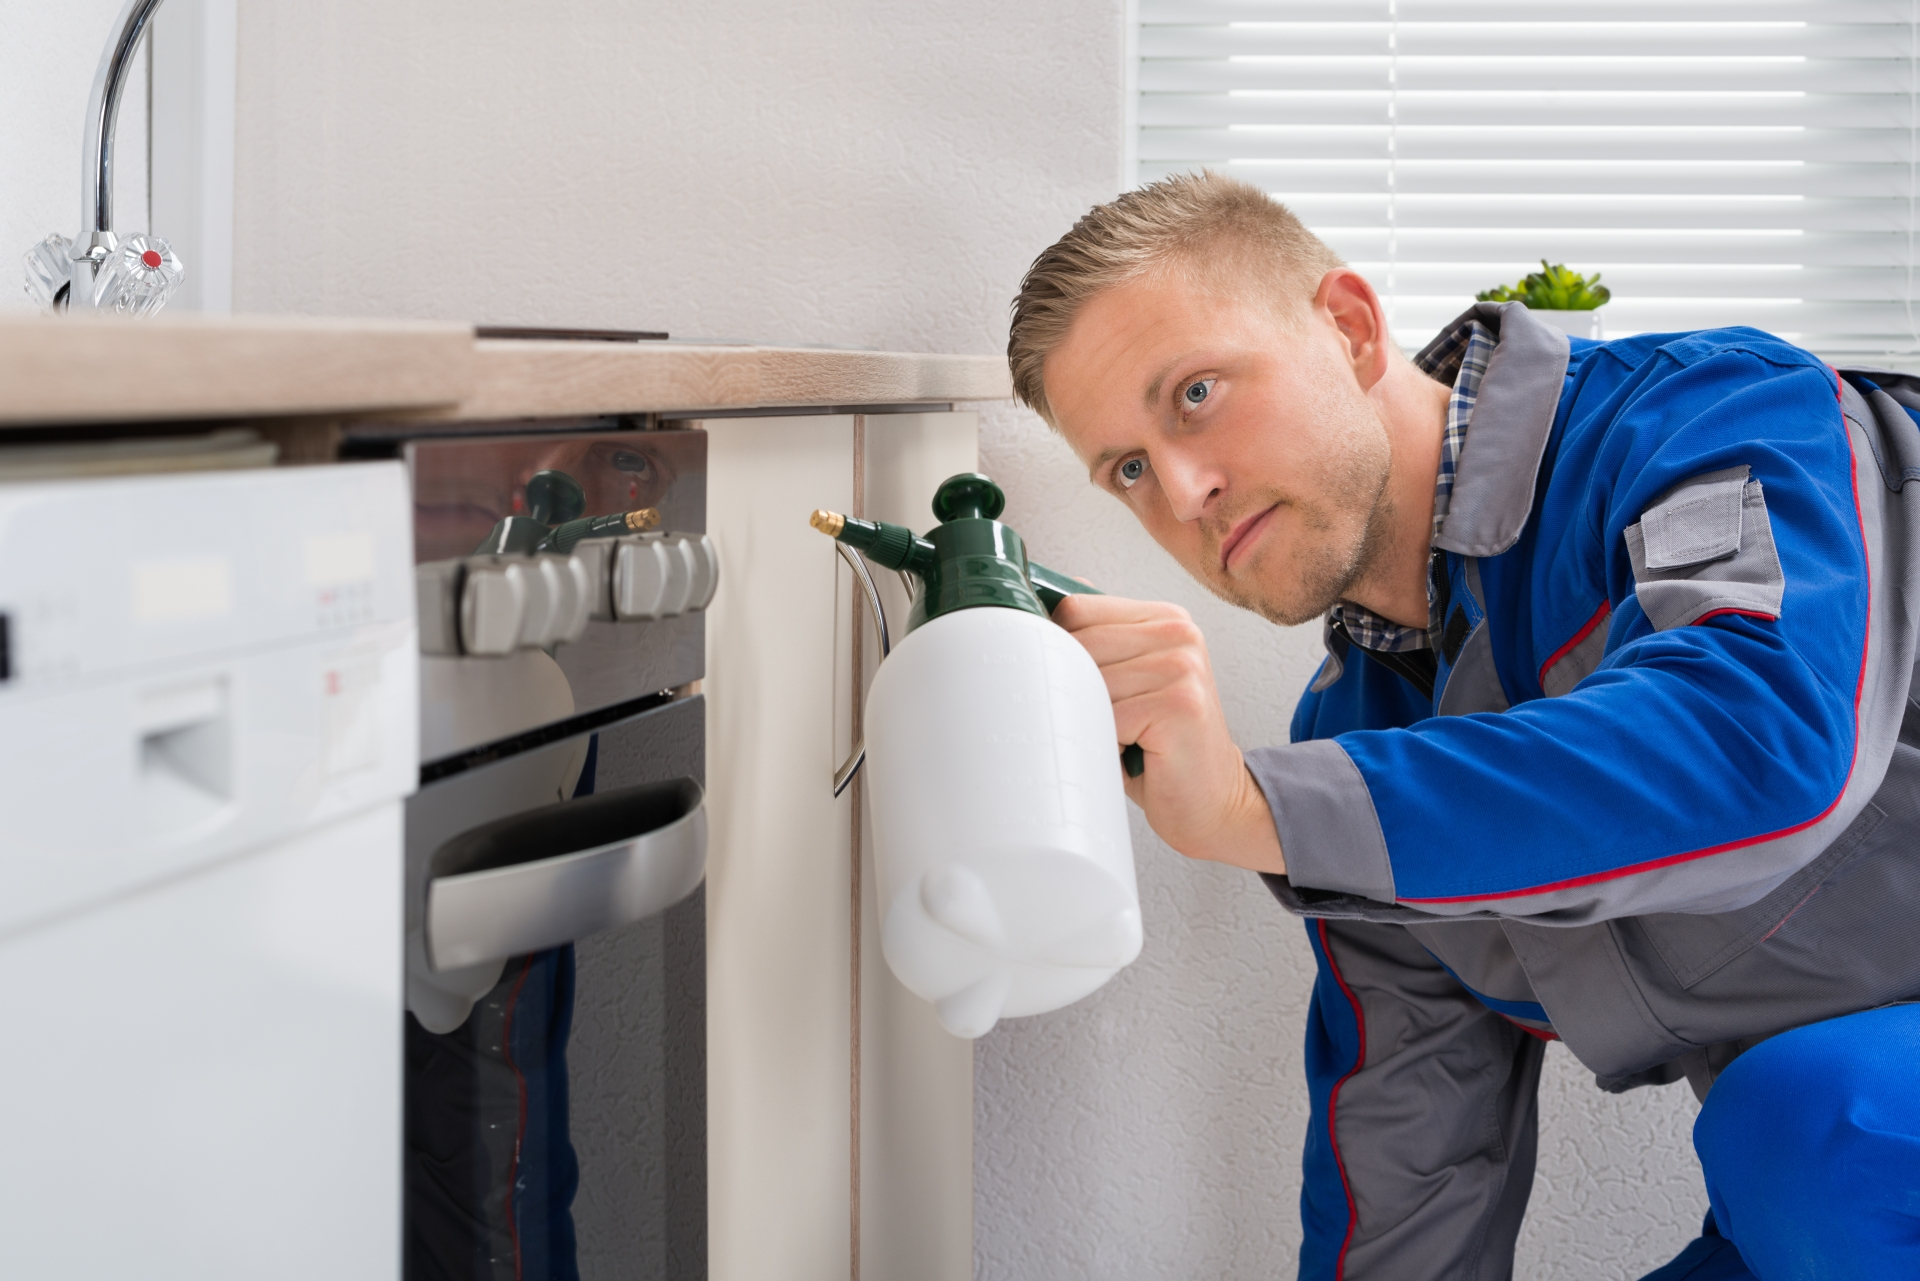 Pest Inspection, Pest Control in Barnes, Castelnau, SW13. Call Now 020 8166 9746